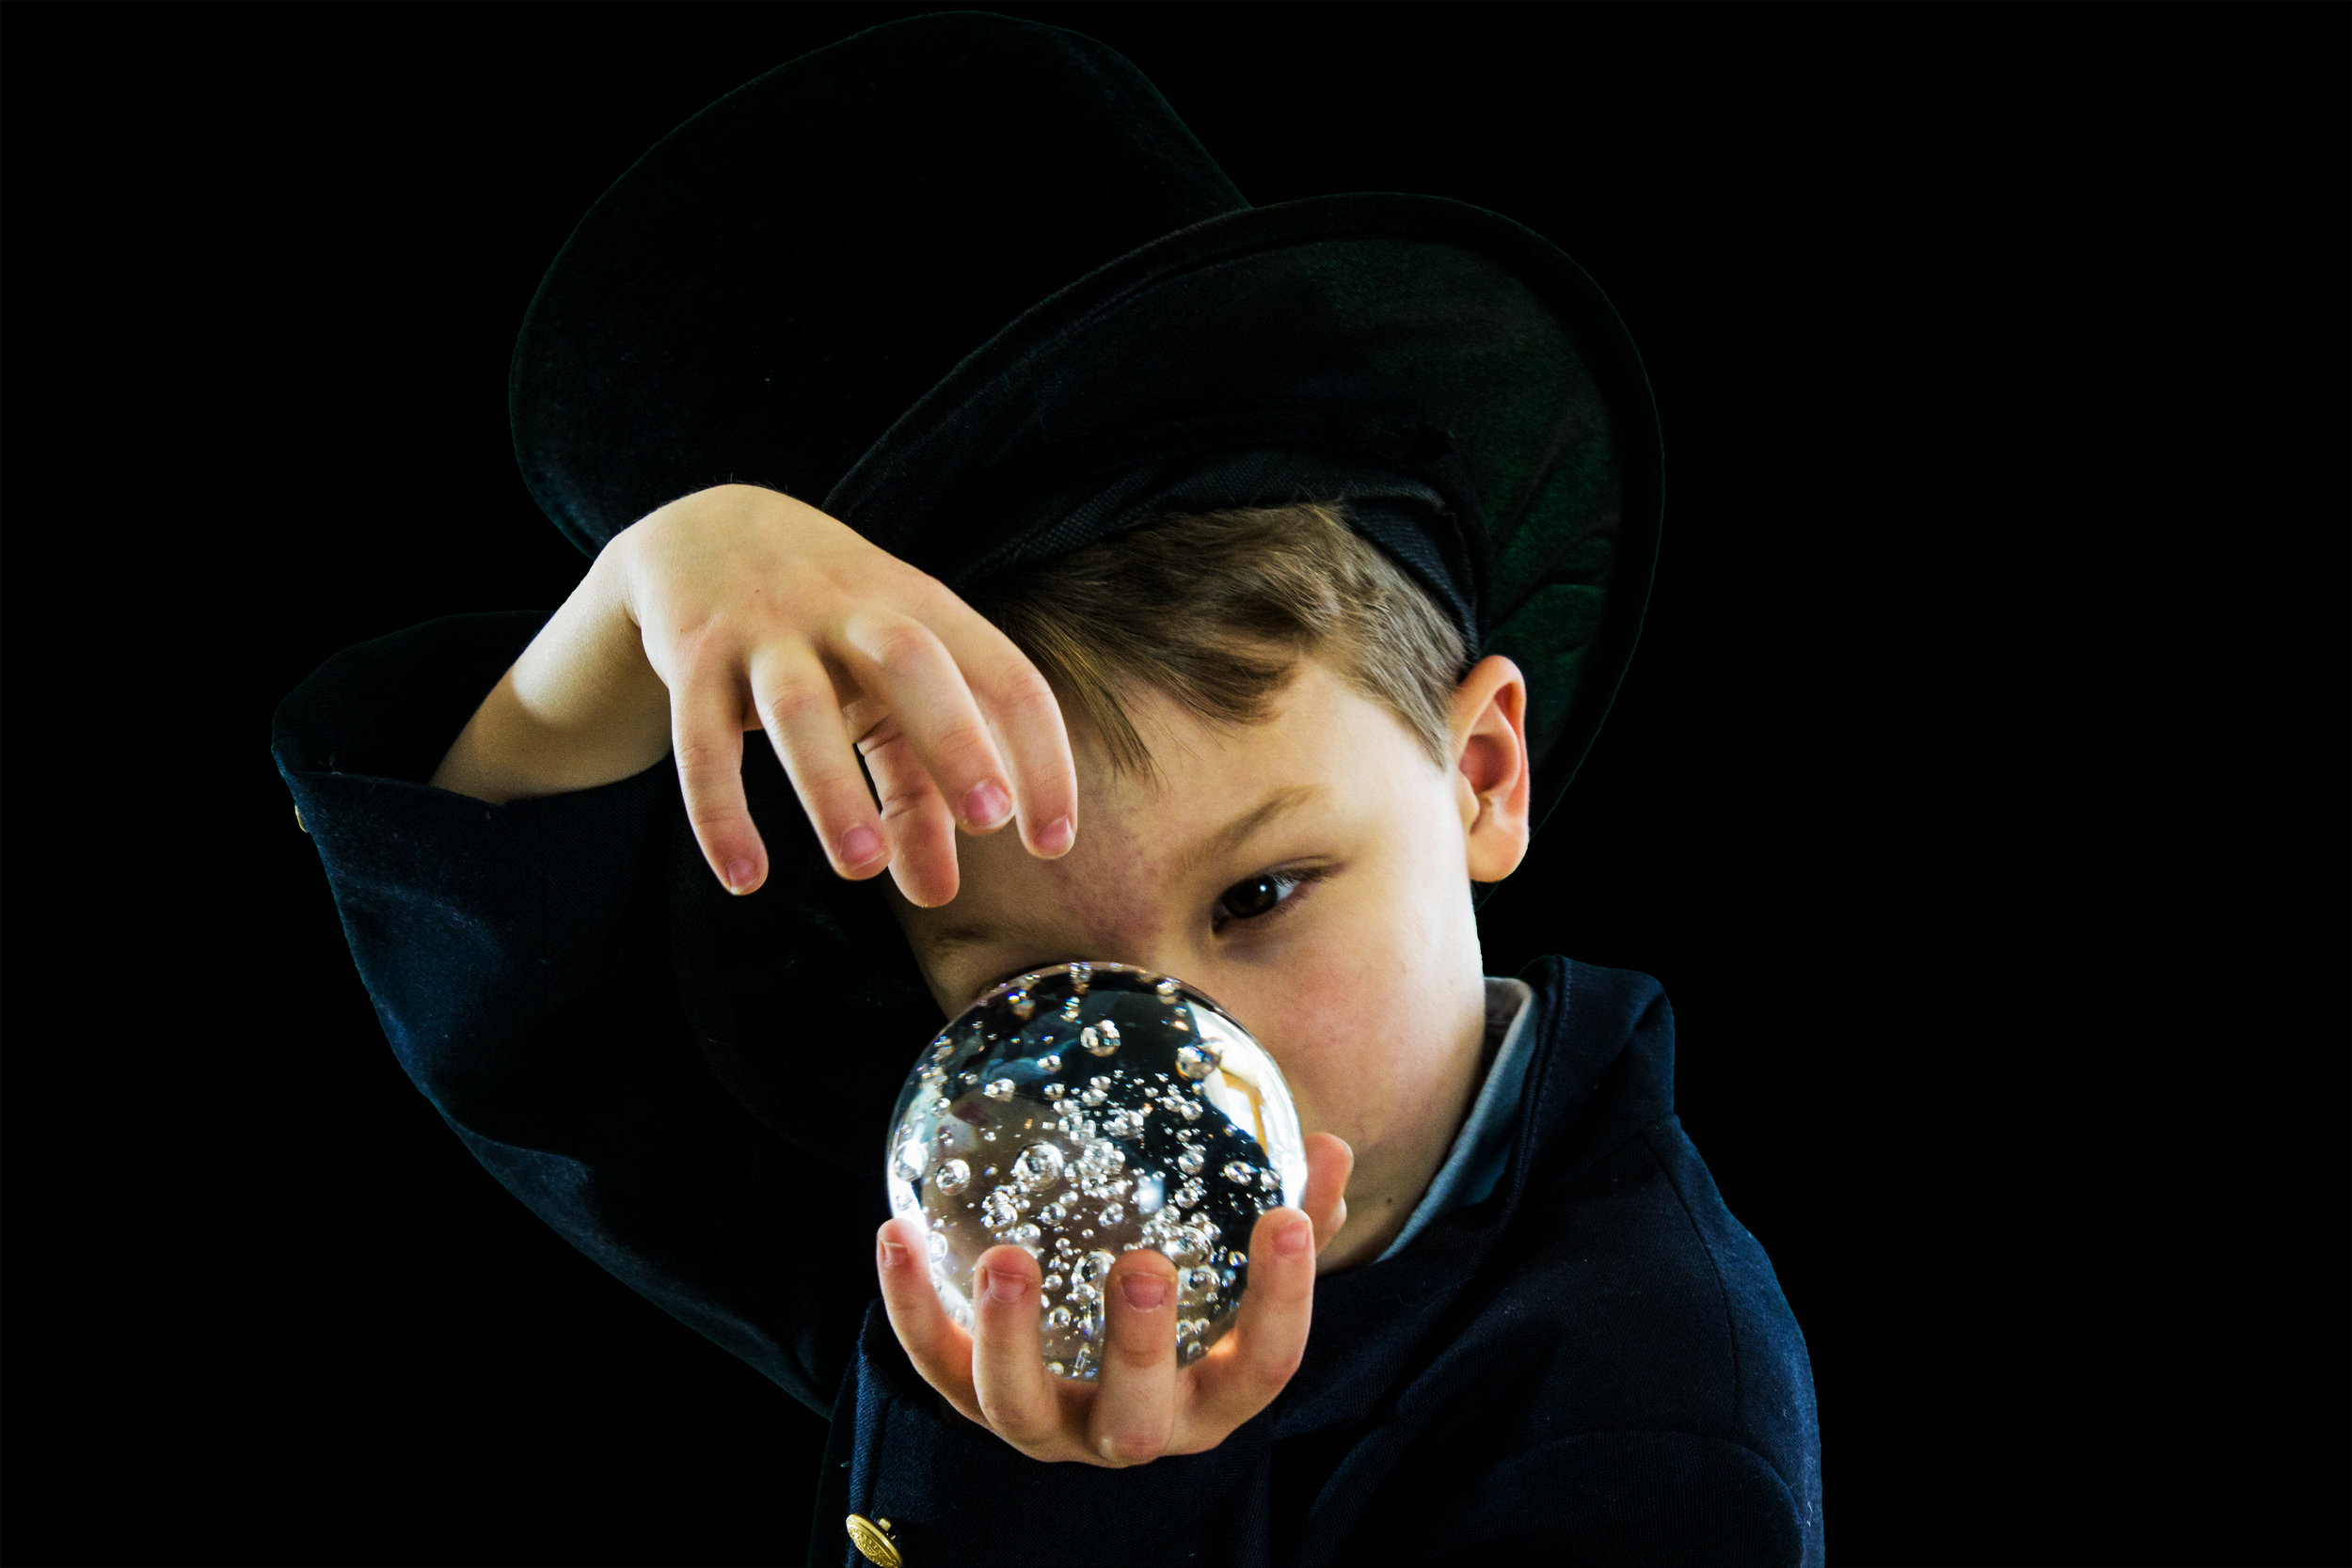 Crystal balls are perhaps the most notorious scrying tools—but aren't necessarily for everyone.